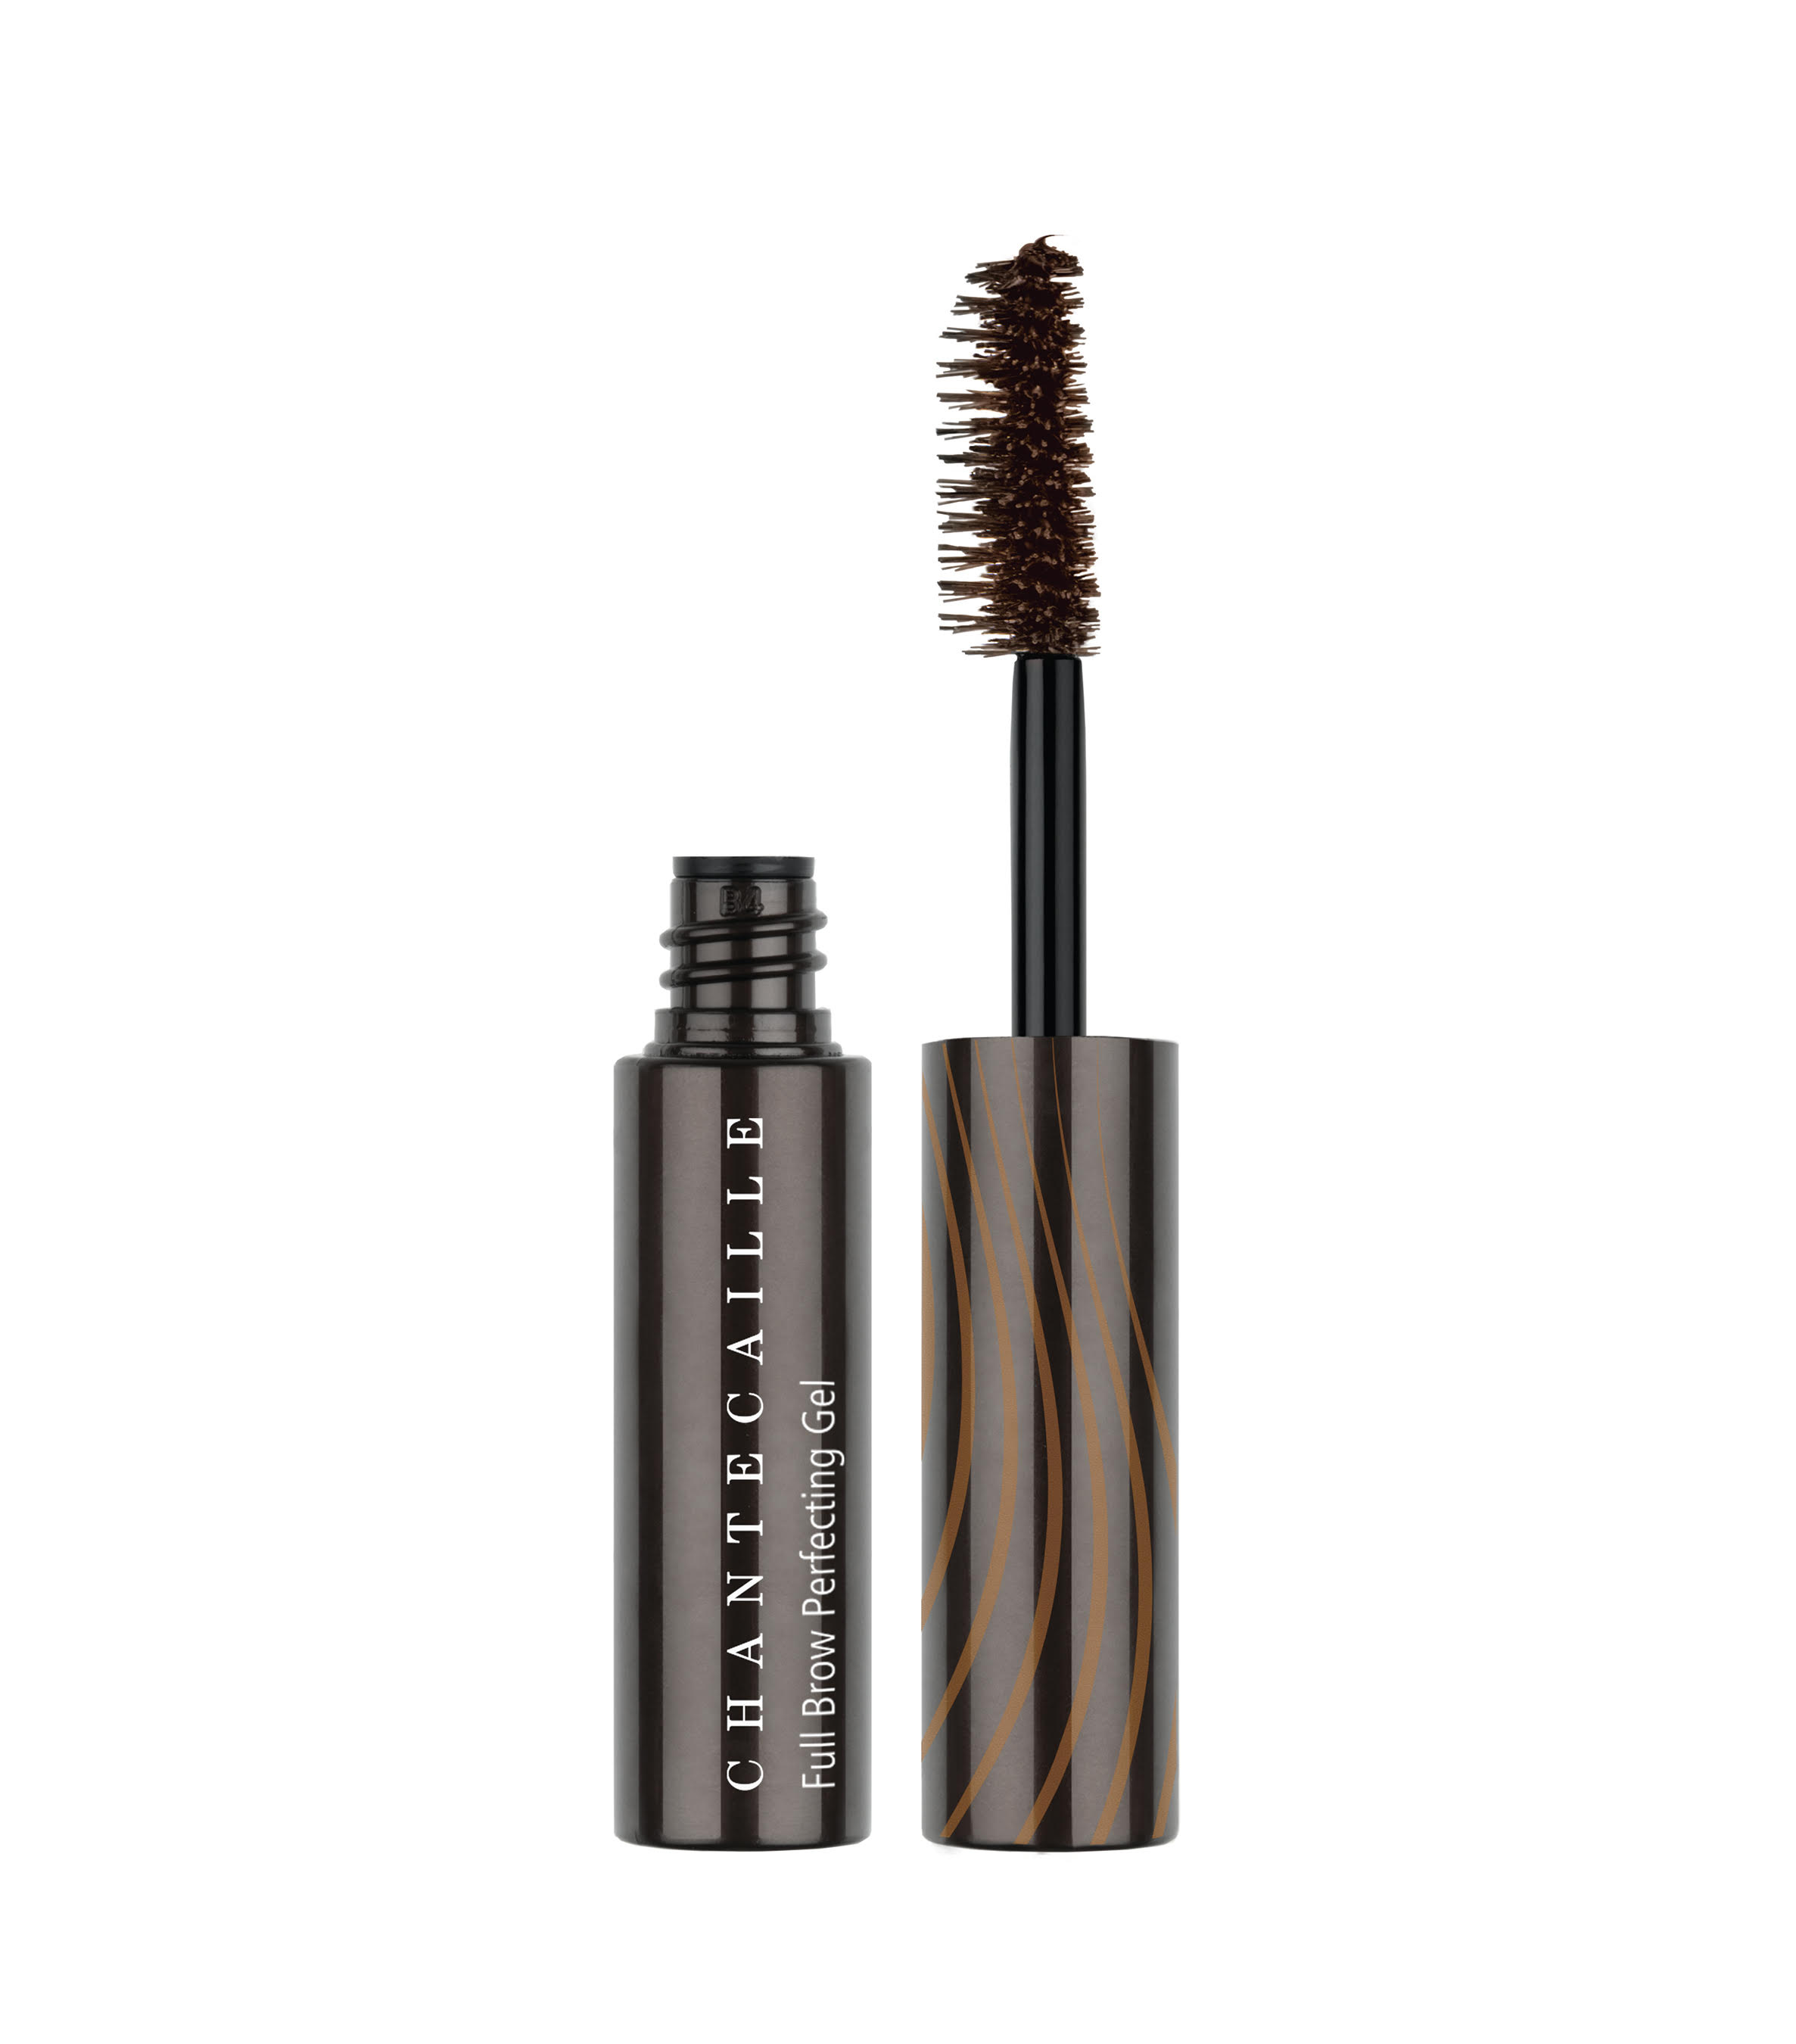 Chantacaille Brow Gel, Available at Chantecaille